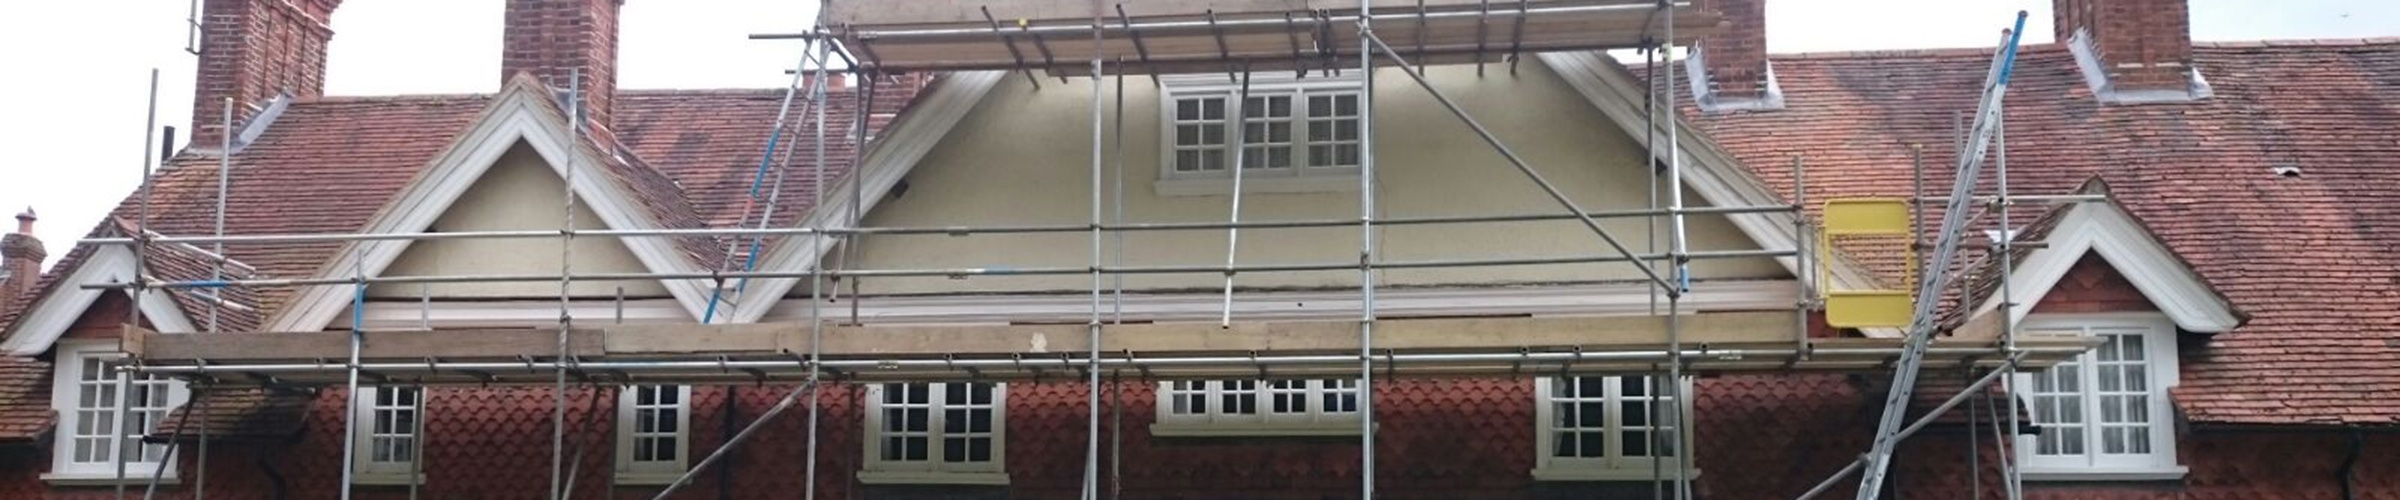 roofing services wokinghan